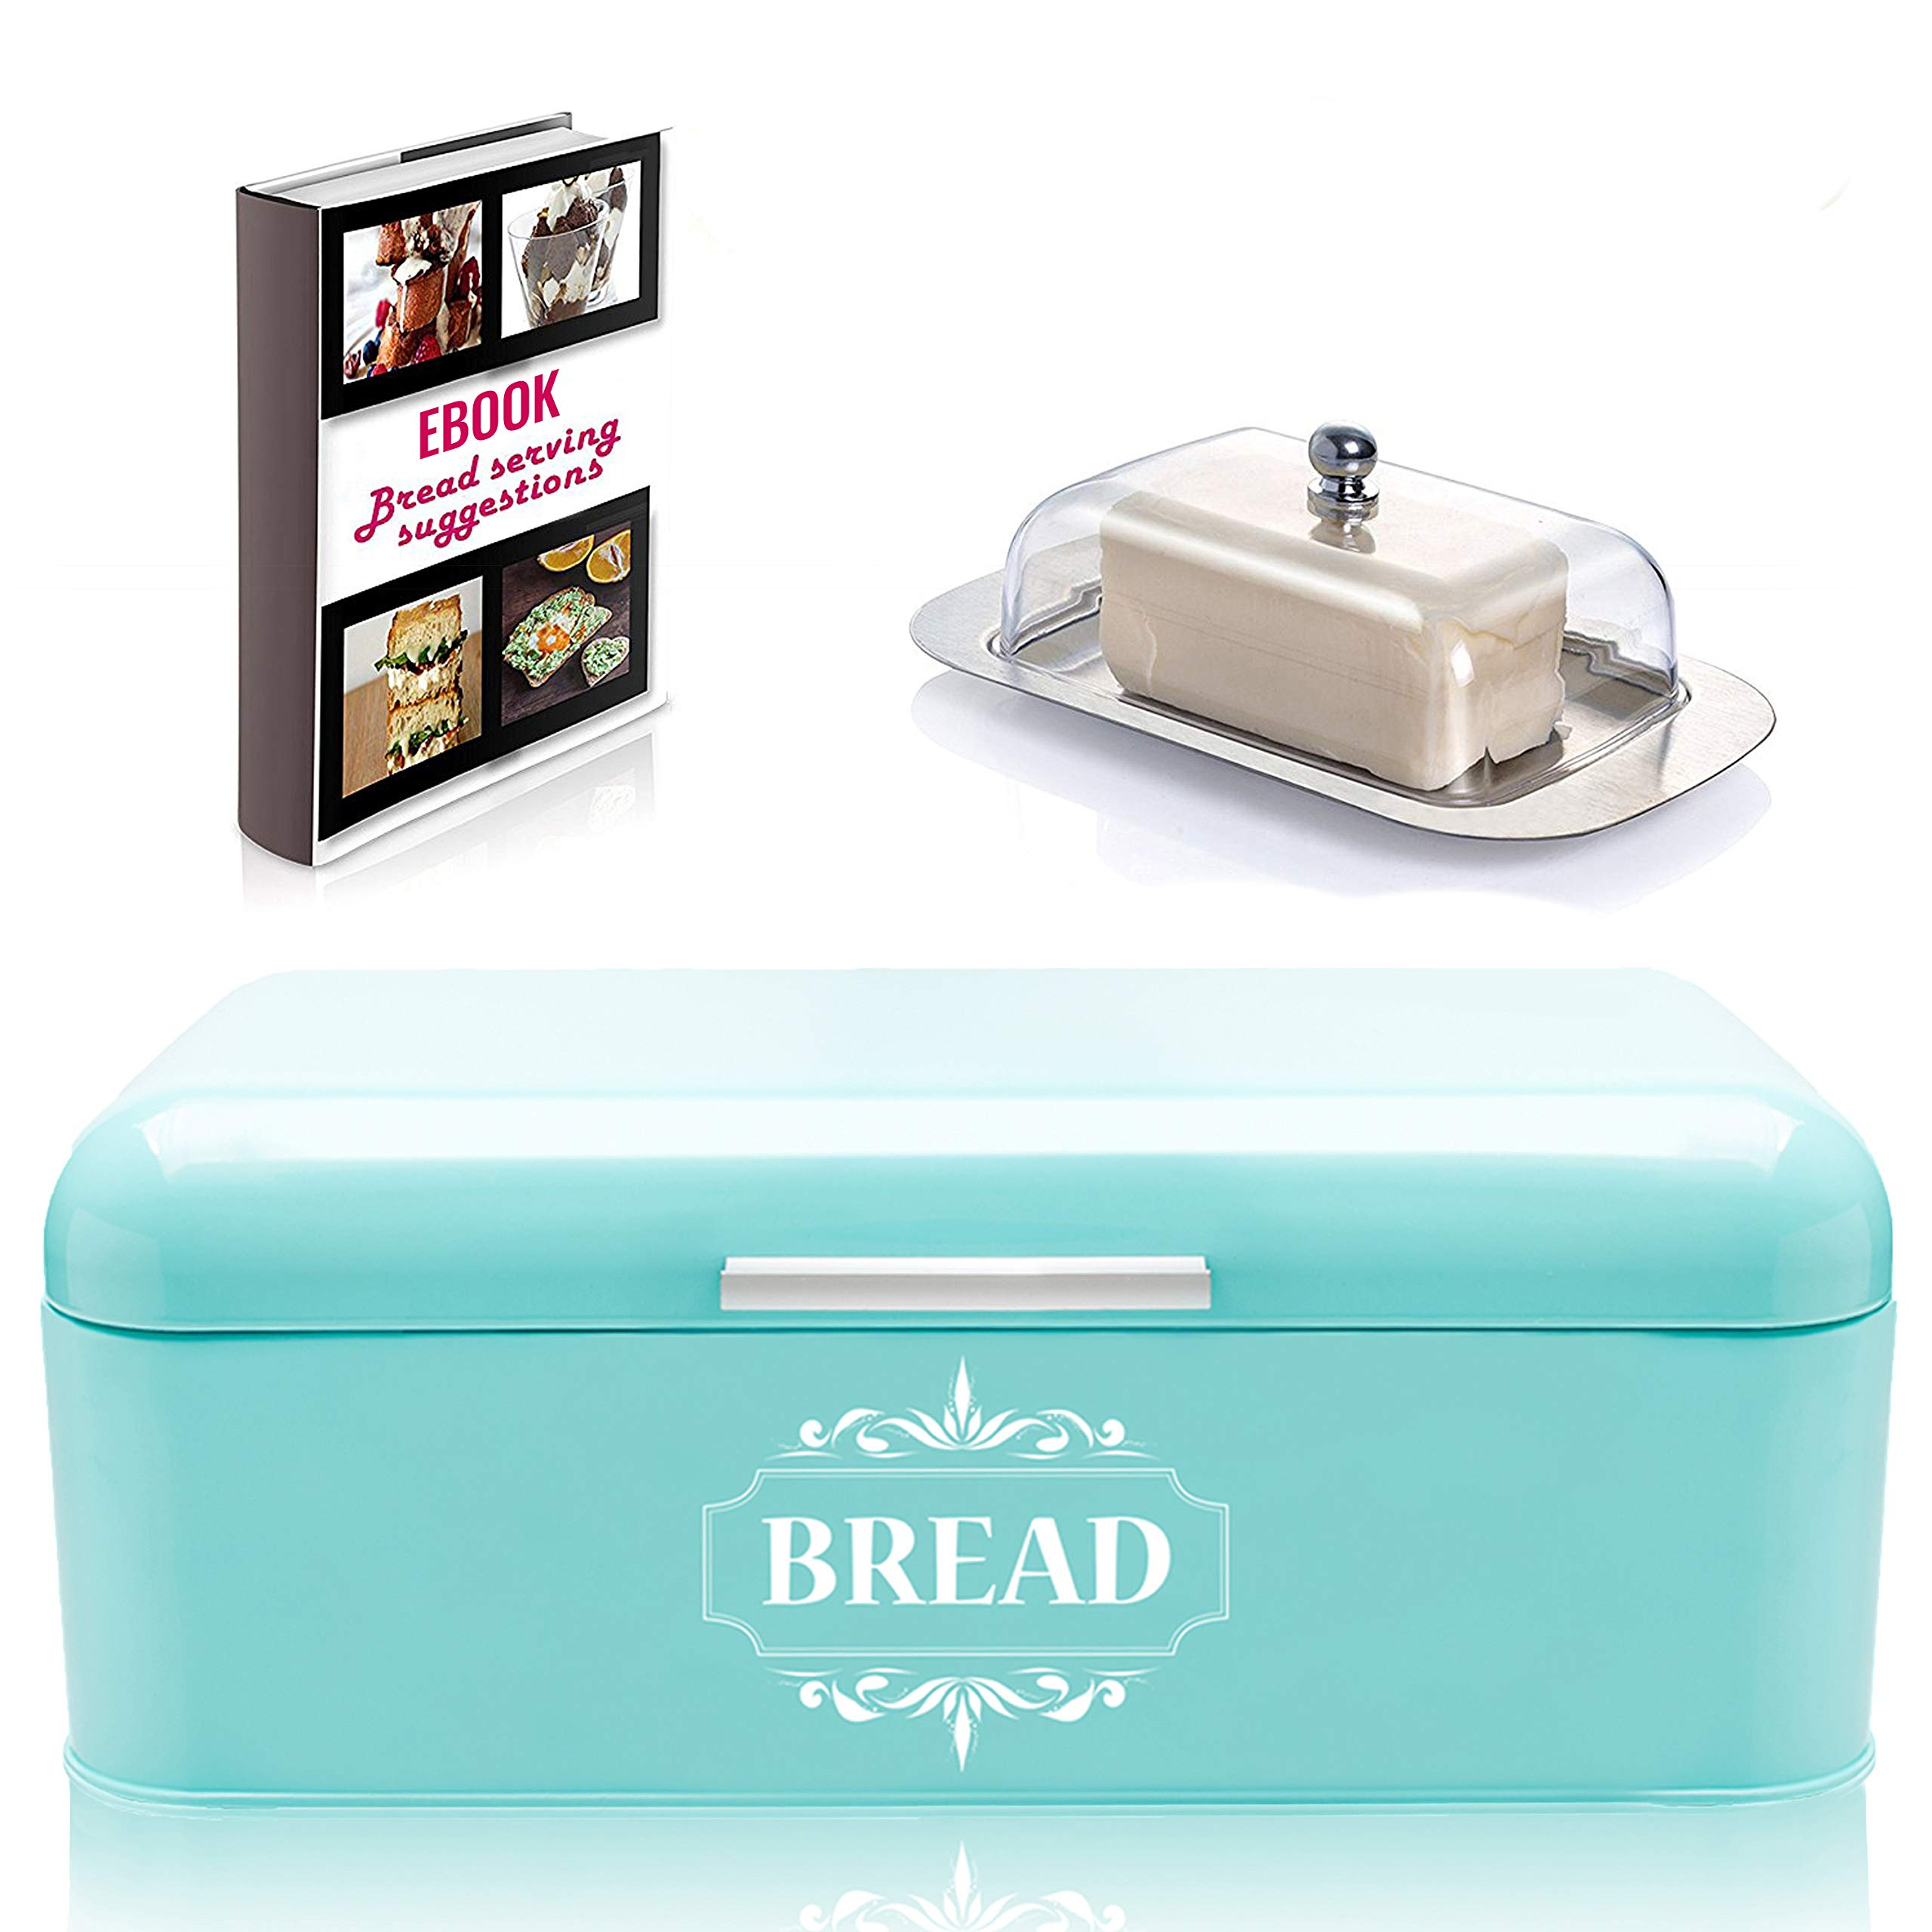 Vintage Bread Box For Kitchen Stainless Steel Metal in Retro Turquoise + FREE Butter Dish + FREE Bread Serving Suggestions eBook 16.5'' x 9'' x 6.5'' Large Bread Bin storage by All-Green Products